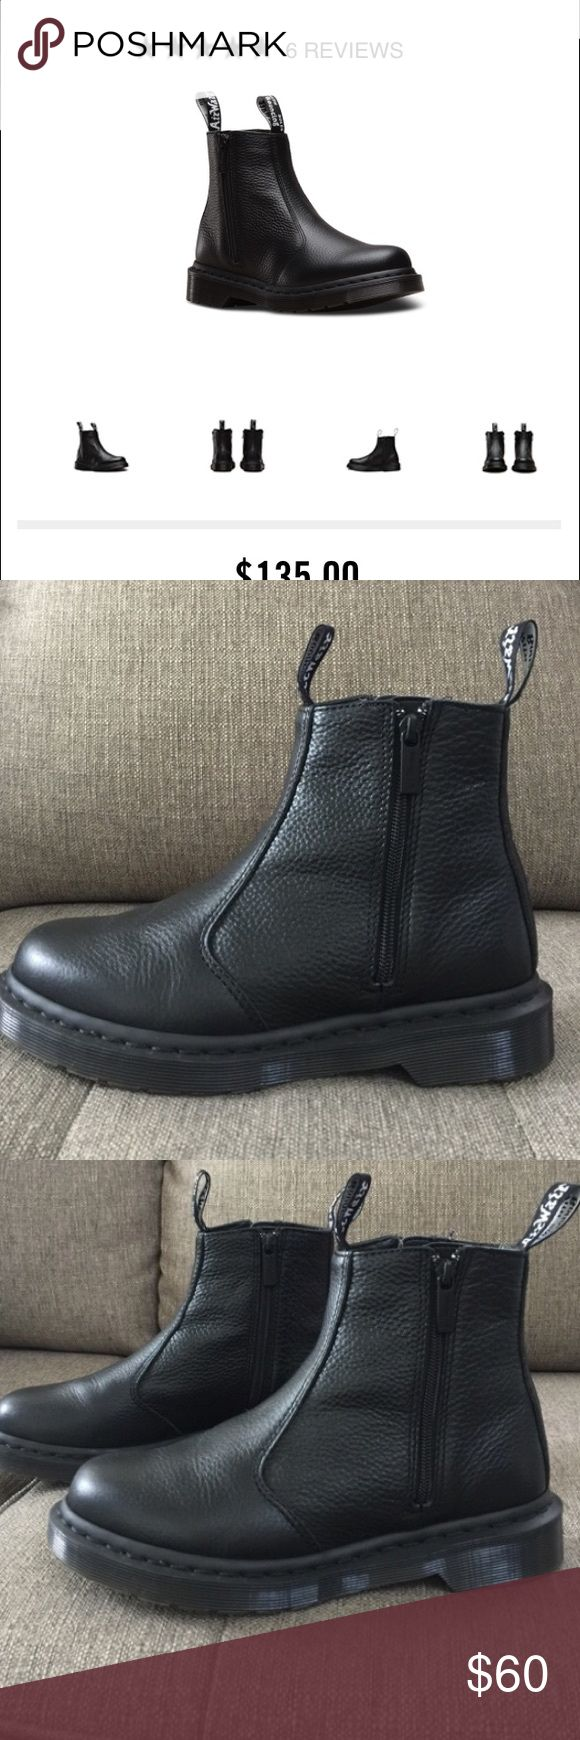 Dr. Marten boots These are a re-posh. They were slightly too big! I wear a solid 8. These are marked as an 8 but they fit like an 8.5 OR has room for super thick socks. They are incredible shape. I paid $60. They are online for $135. Dr. Martens Shoes Ankle Boots & Booties